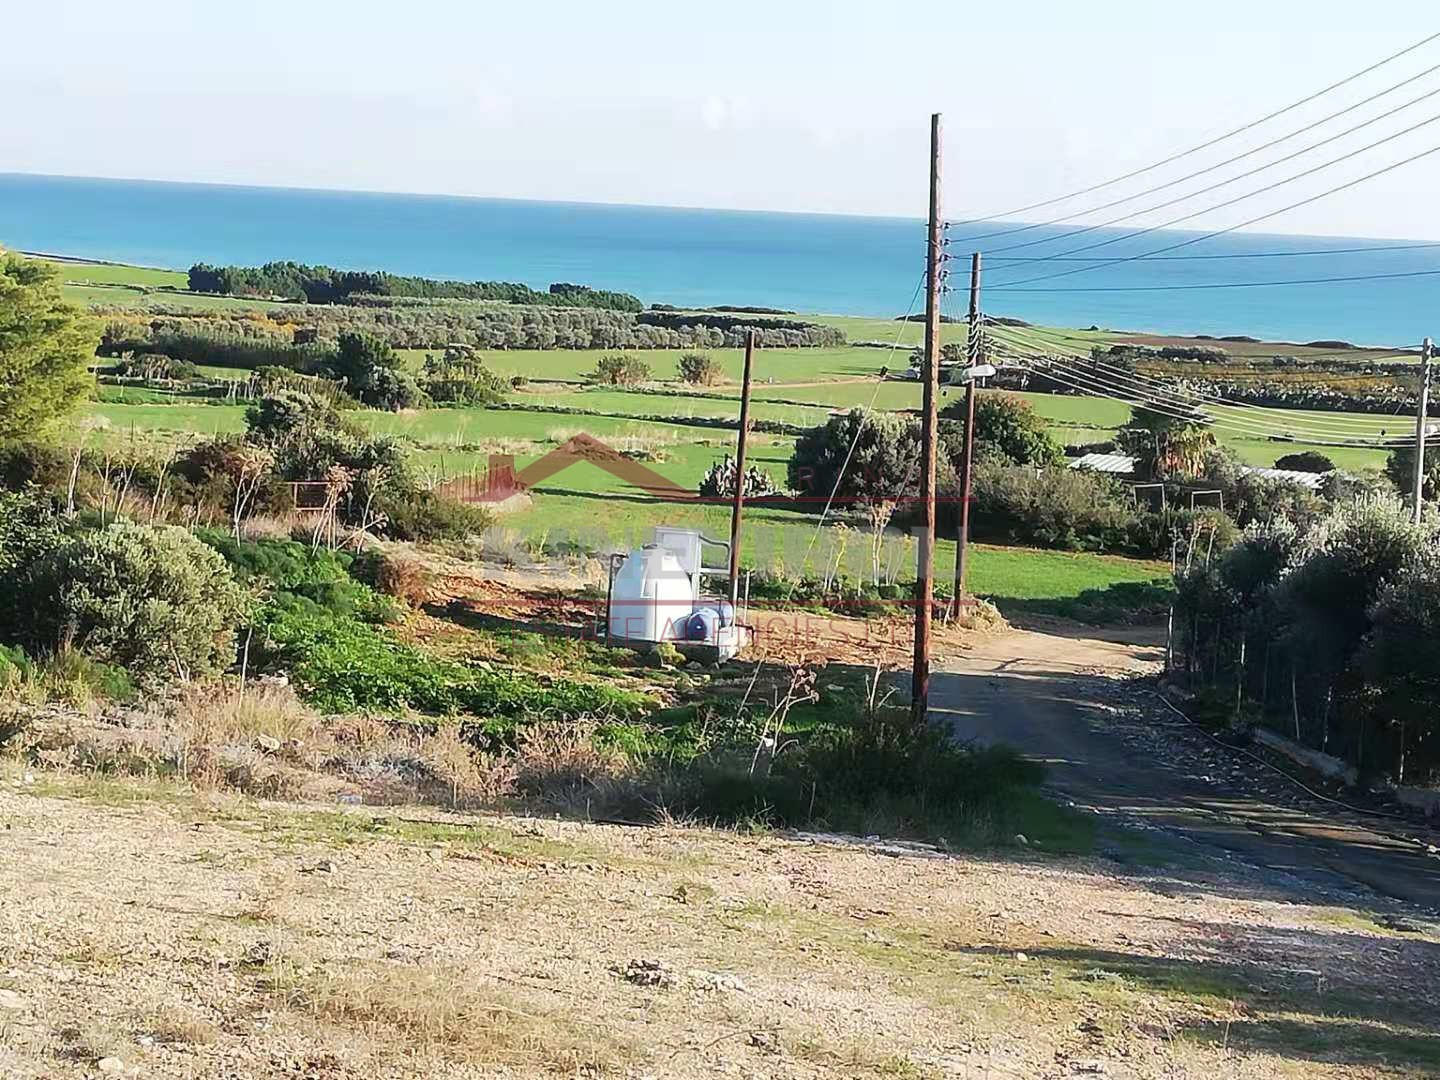 Land For Sale in Agios Theodoros- Larnaca.